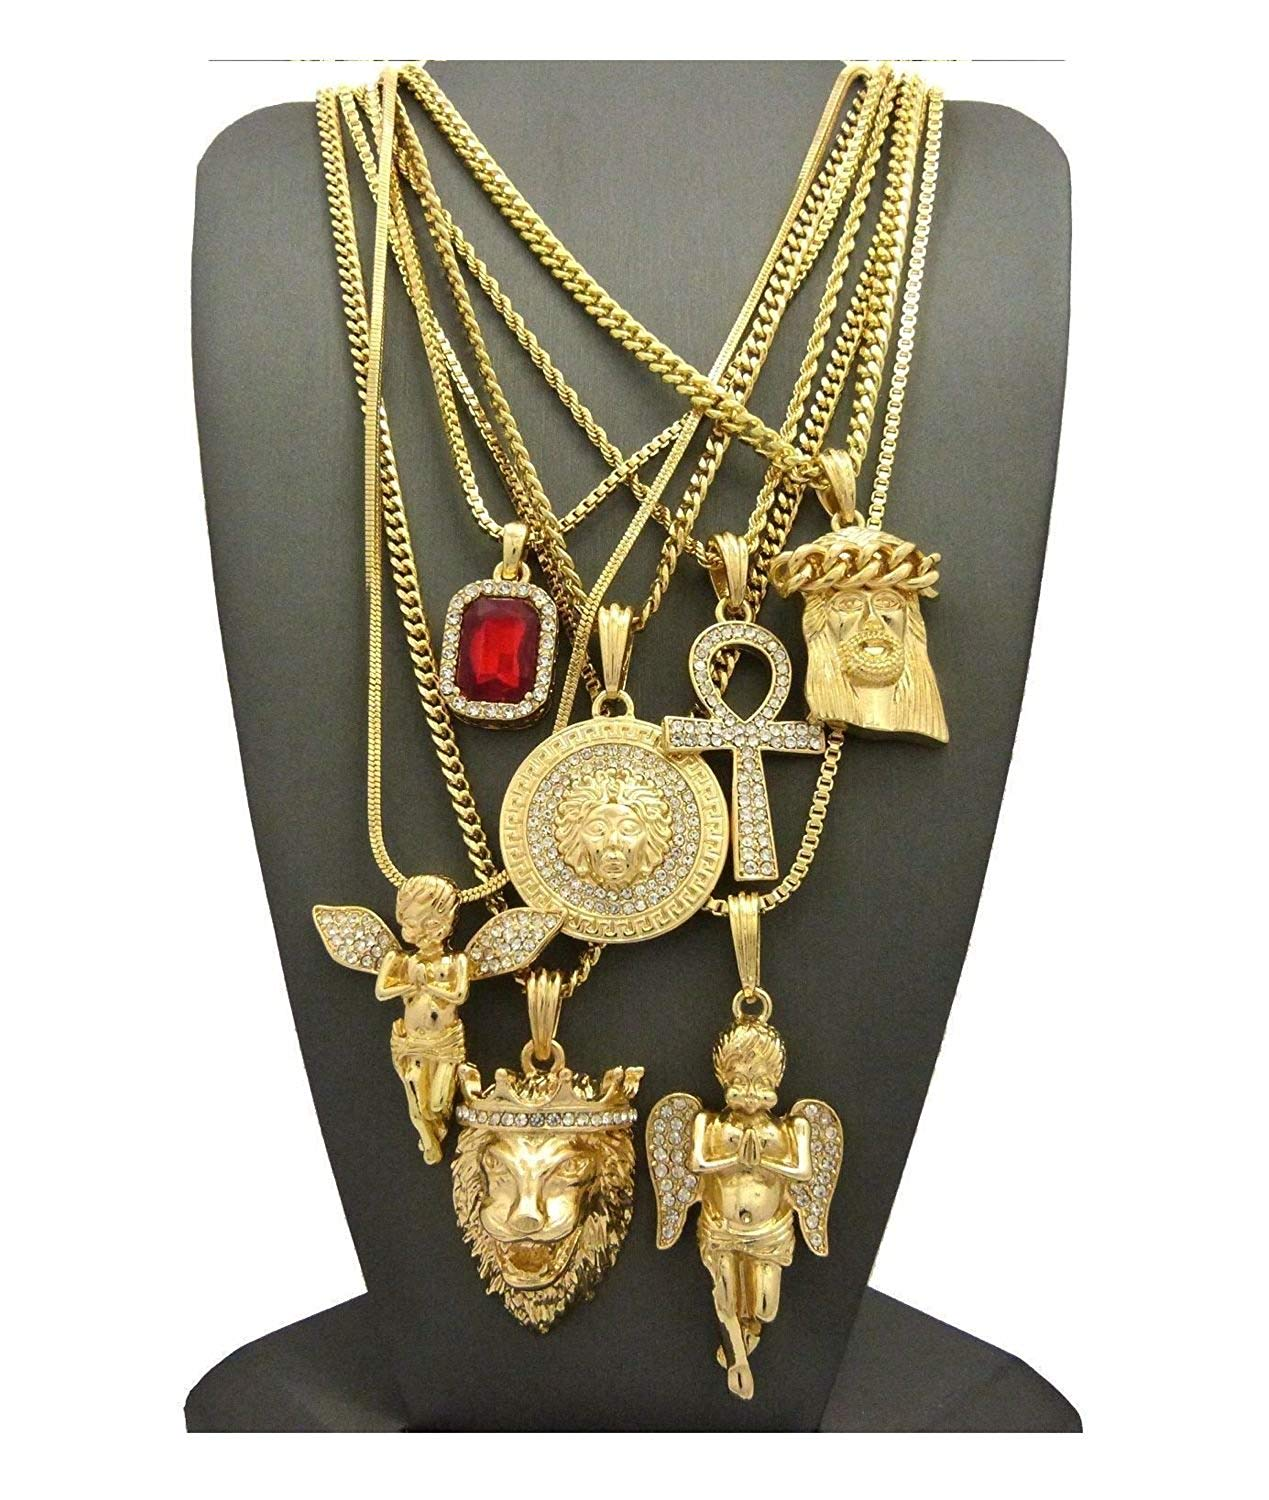 Buy Lord Jesus Pendant And Necklace Medallion Hand Cut 14 Karat Gold And Rhodium Plated In Cheap Price On Alibaba Com